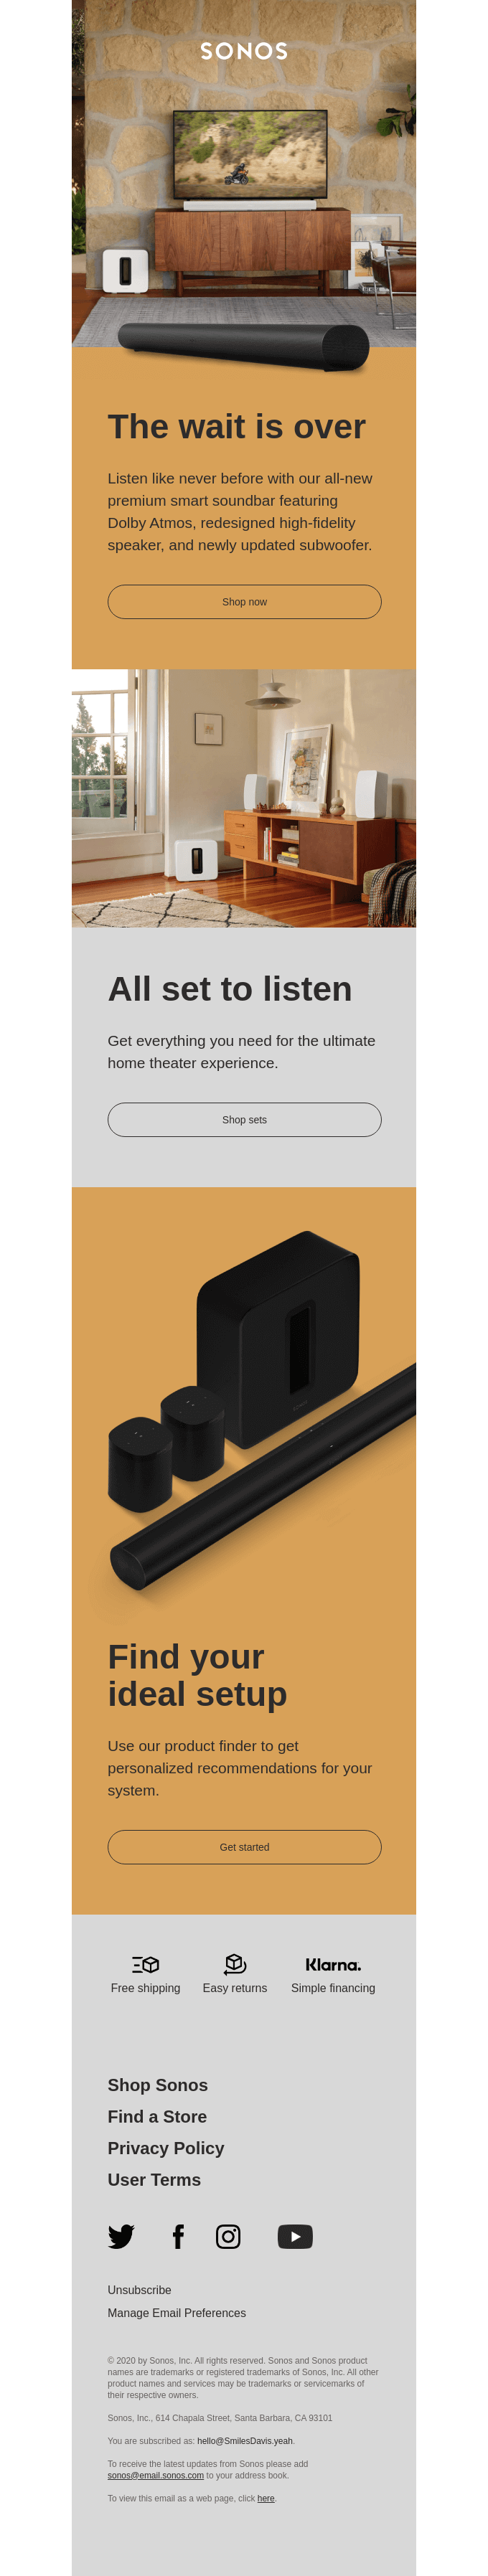 Sonos well-designed email